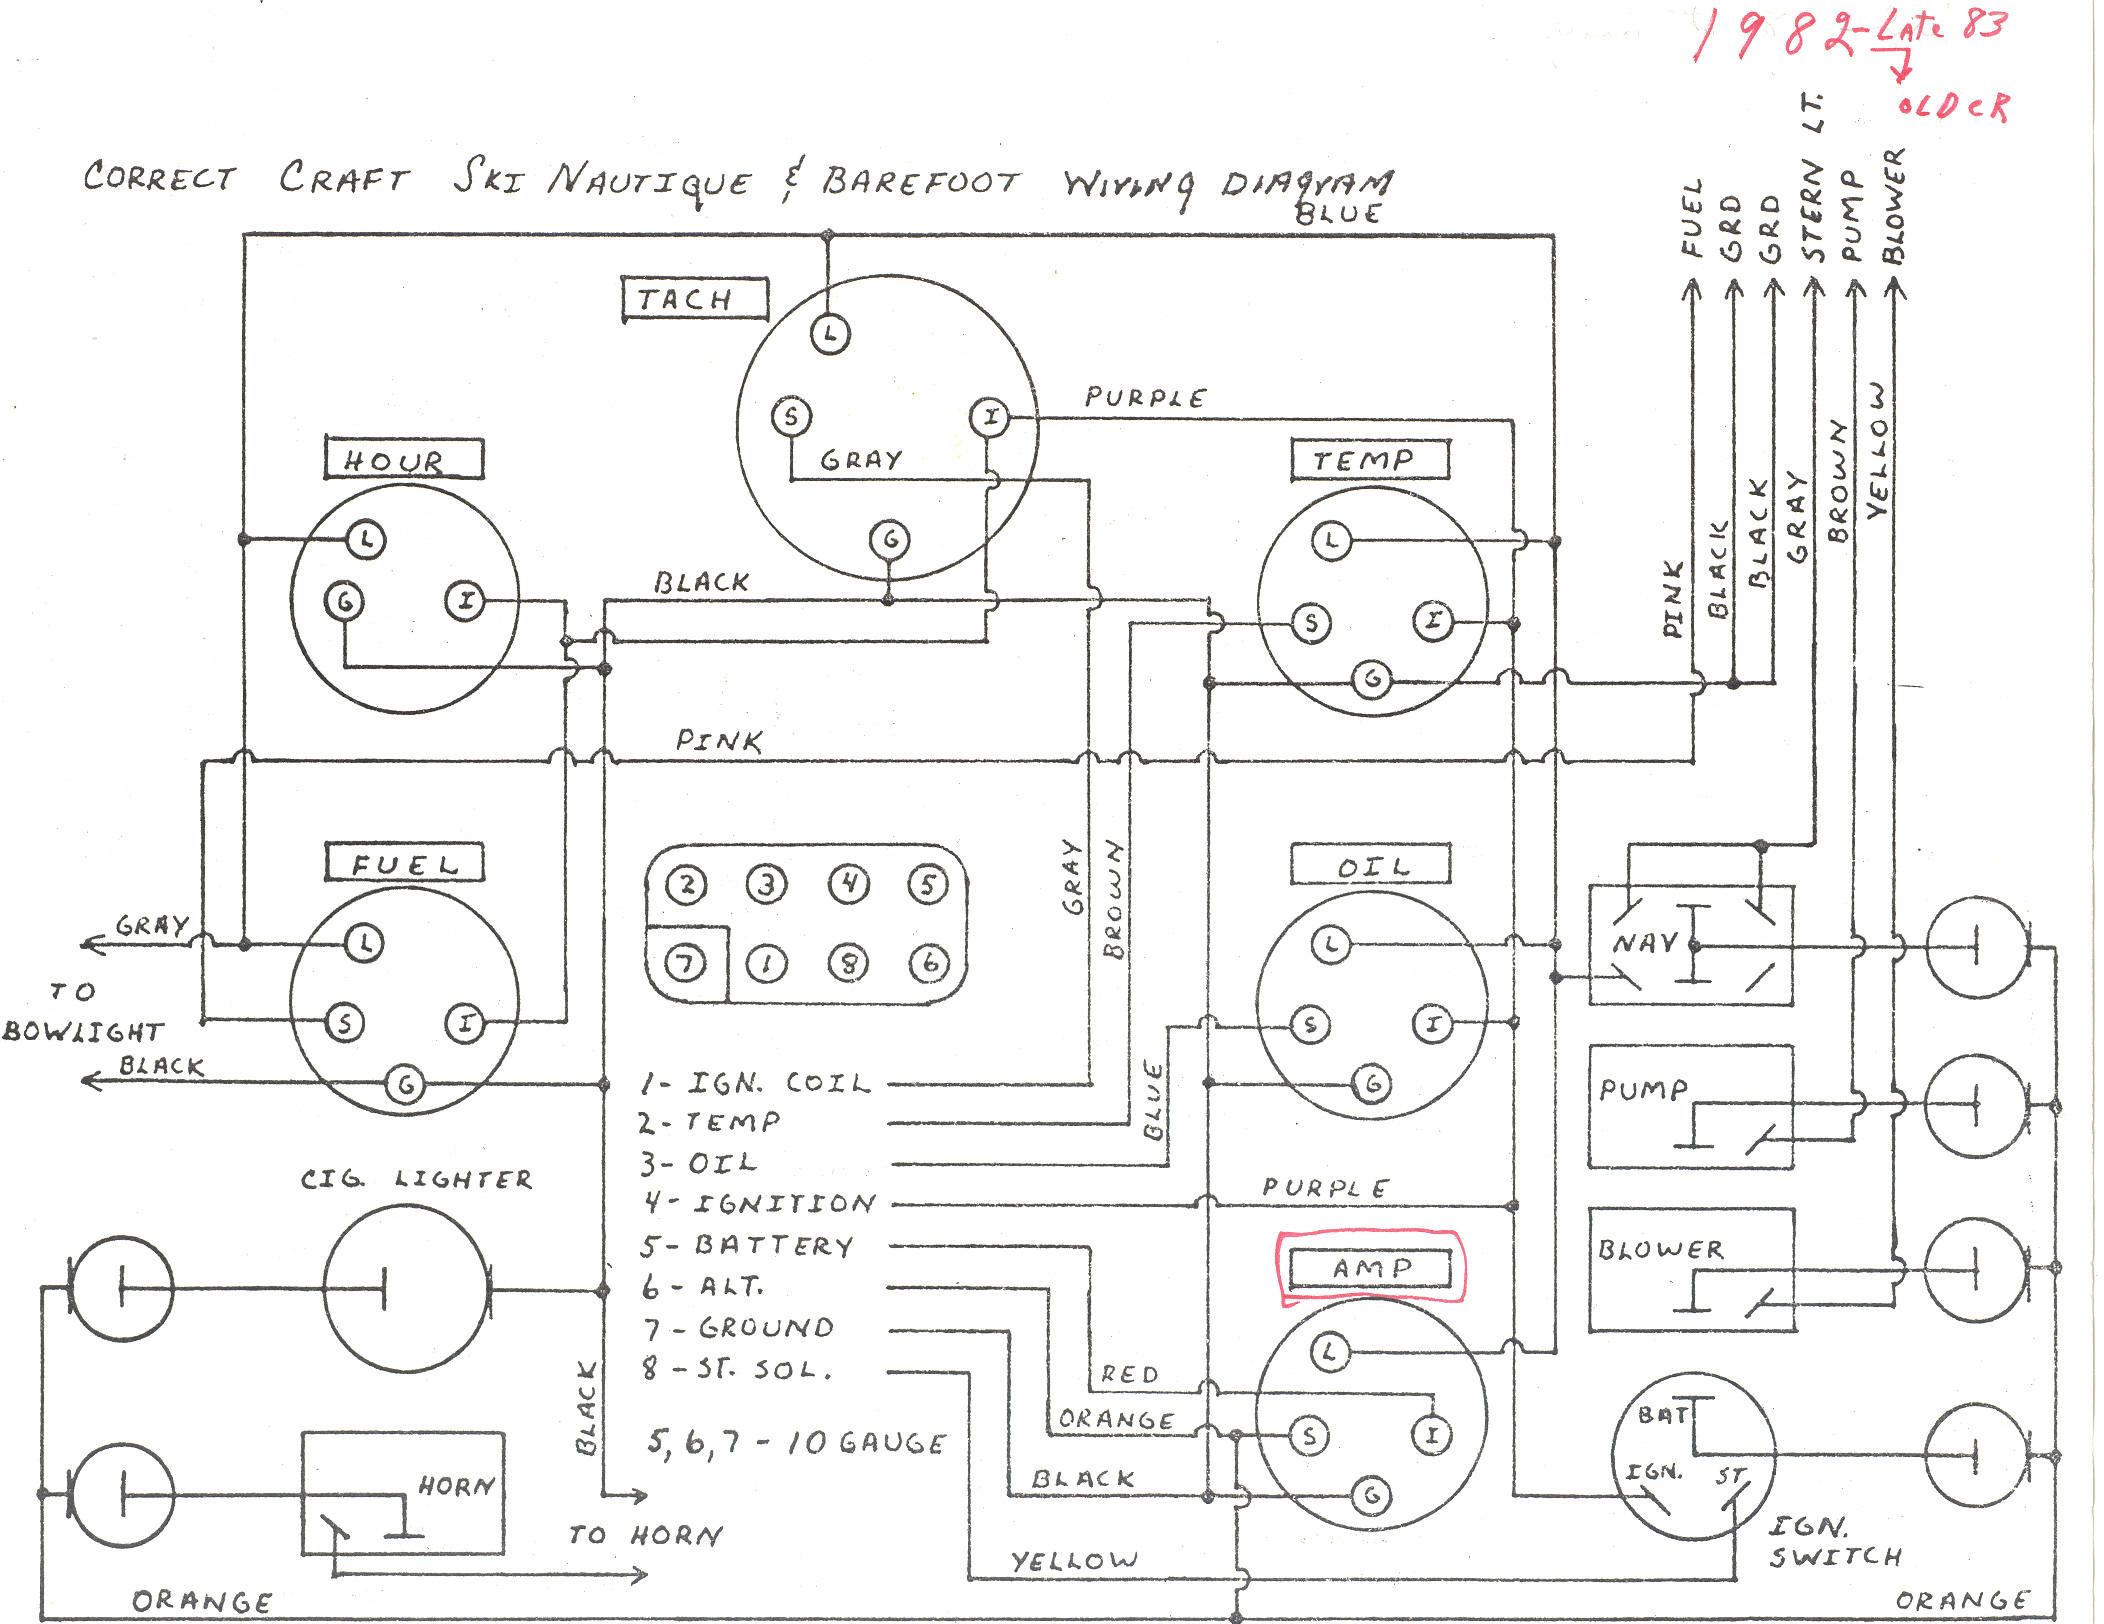 B Tracker Boat Electrical Wiring Diagram. B. Just Another